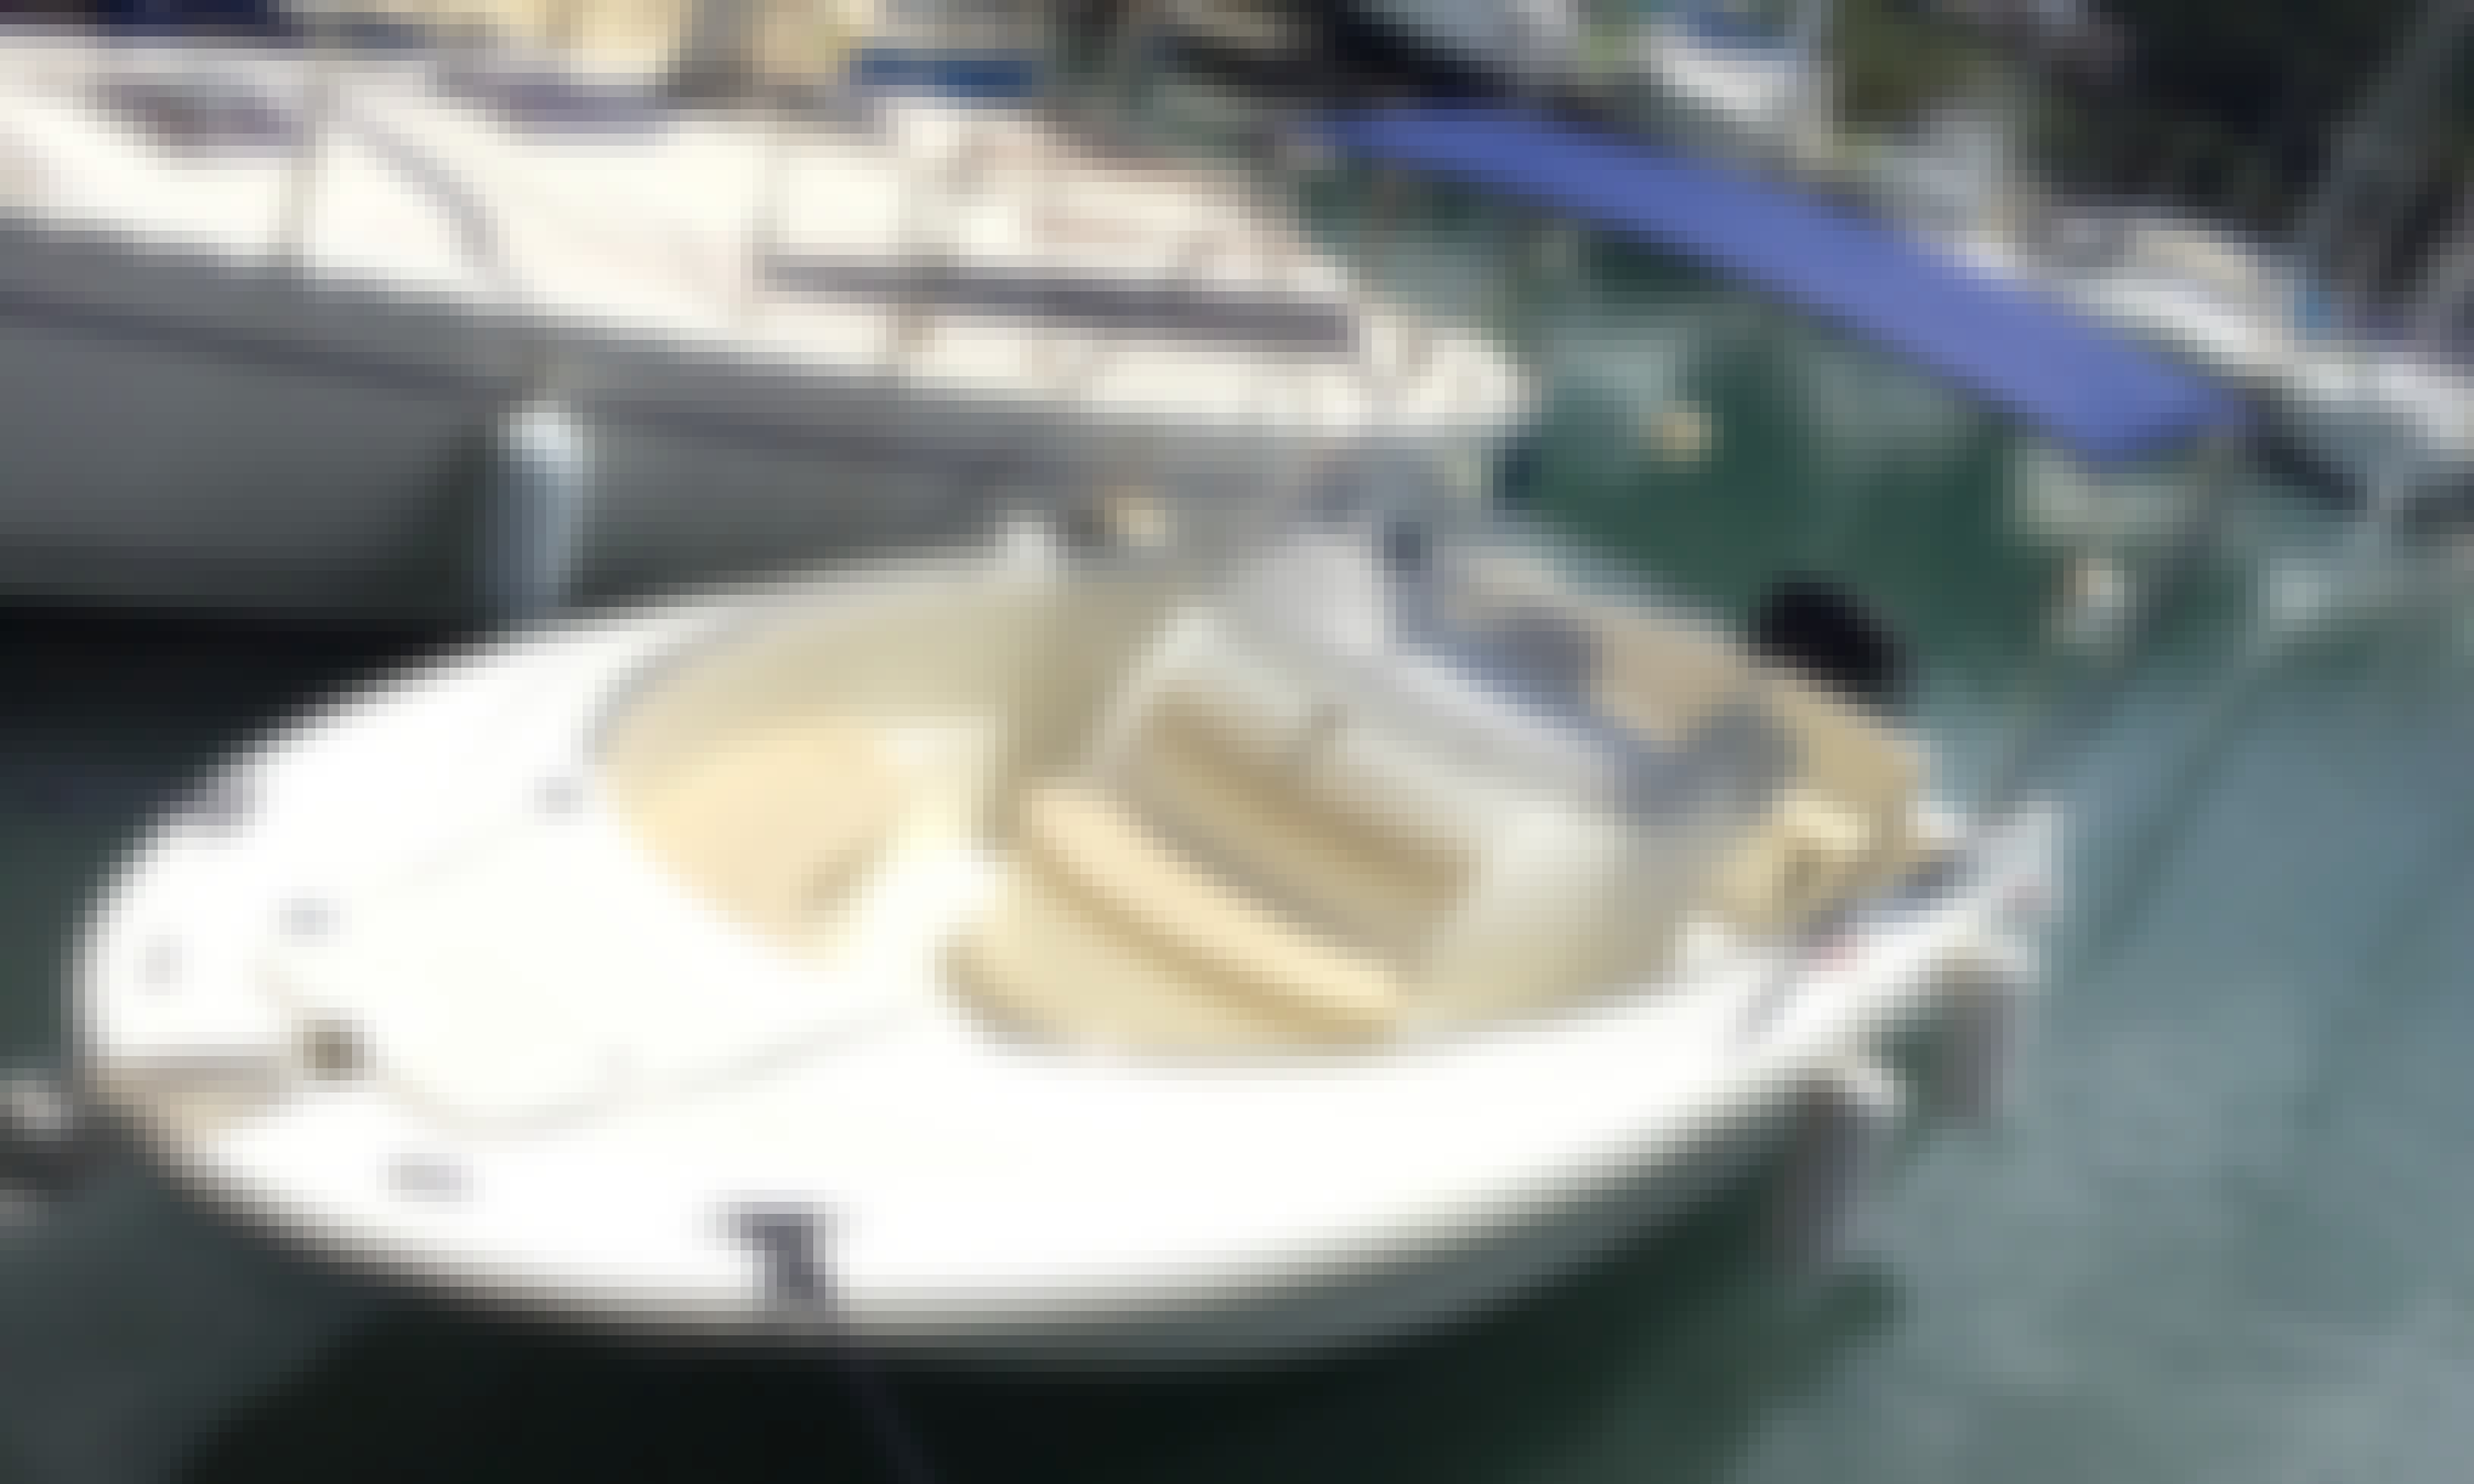 Enjoy Fishing in Gourbeyre, Guadeloupe on 23' CC 715 Center Console